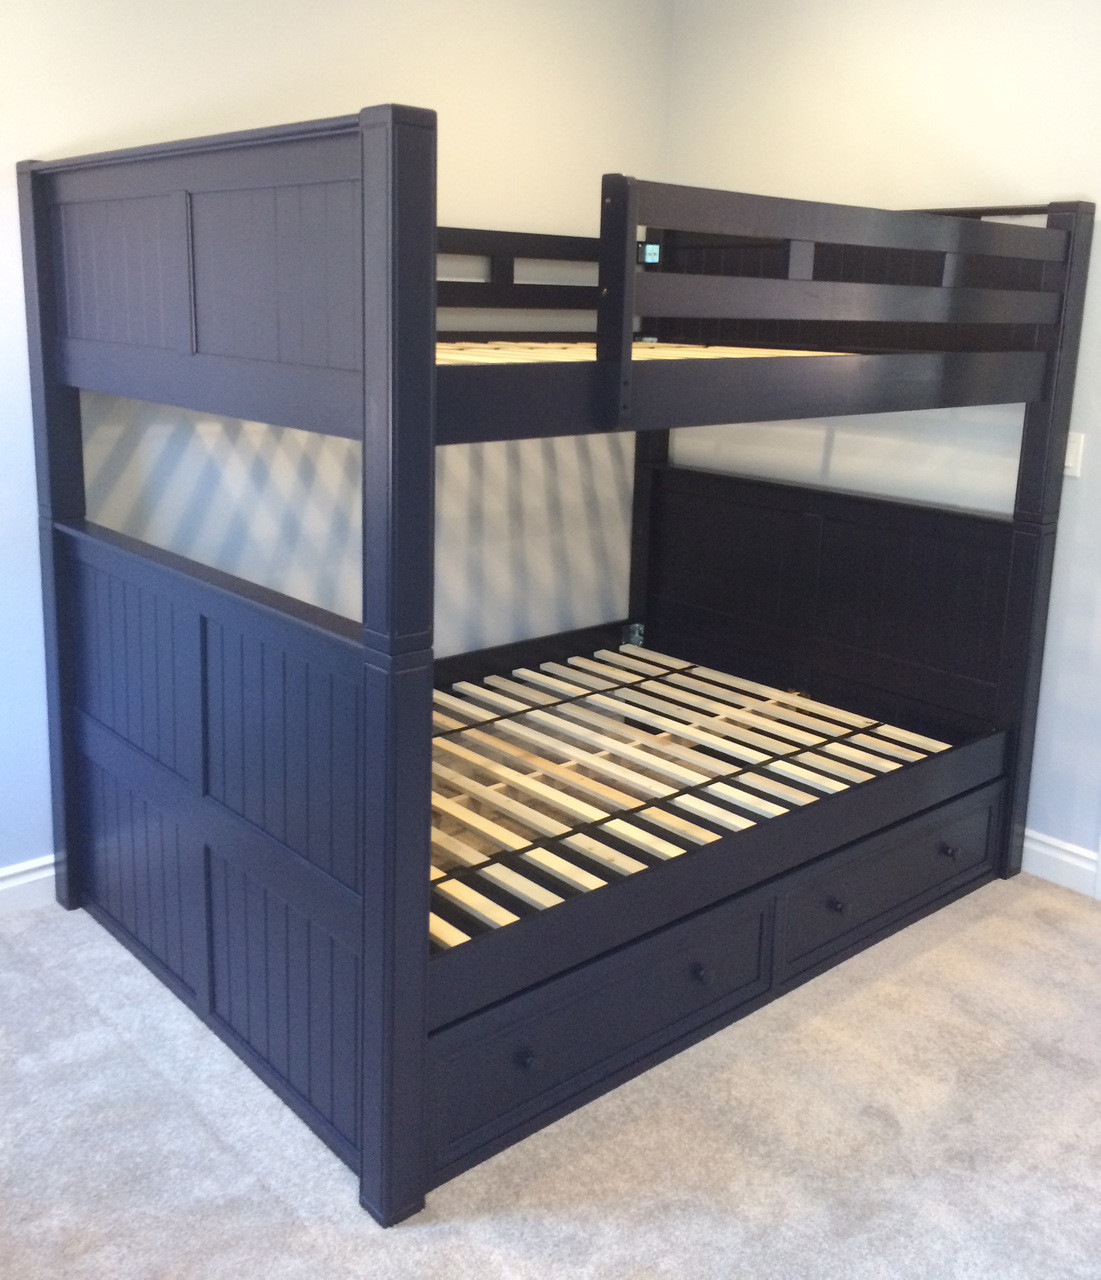 Impressive Under Bed Drawers Dillon Full Over Full Bunk Bed Trundle Bedroom Set Full Bed Under Bed Trundle Full Size Bed Storage Trundle Navy Blue Finish Shown baby Full Bed With Trundle